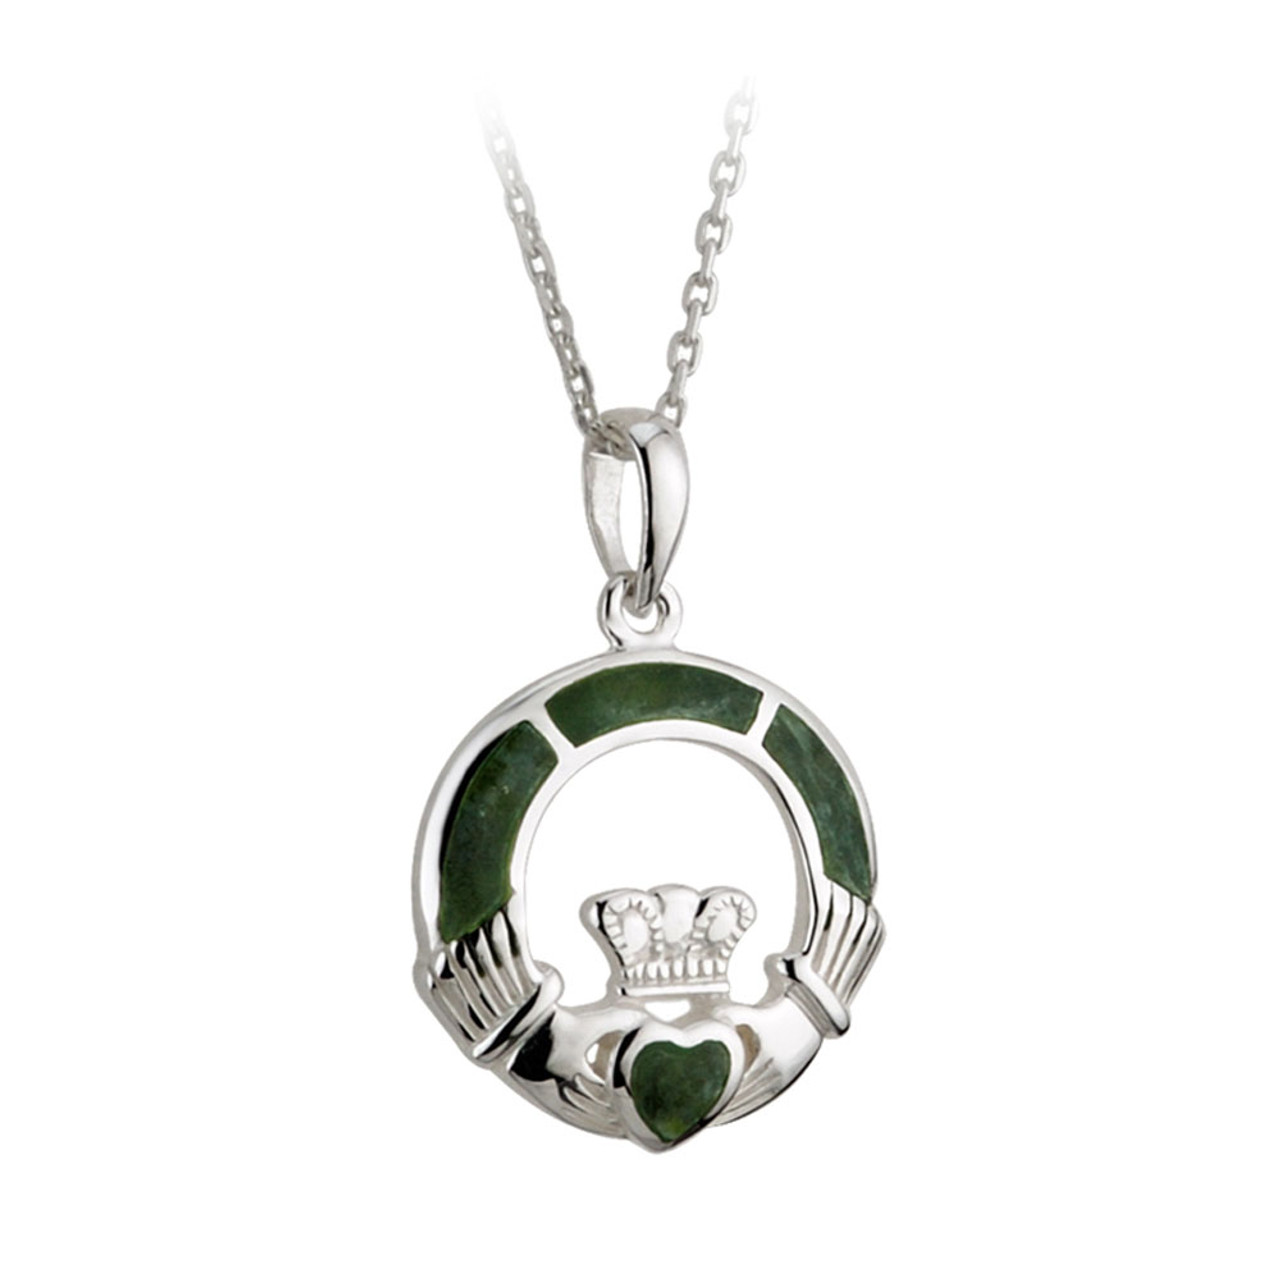 Sterling Silver Claddagh Necklace with Connemara Marble